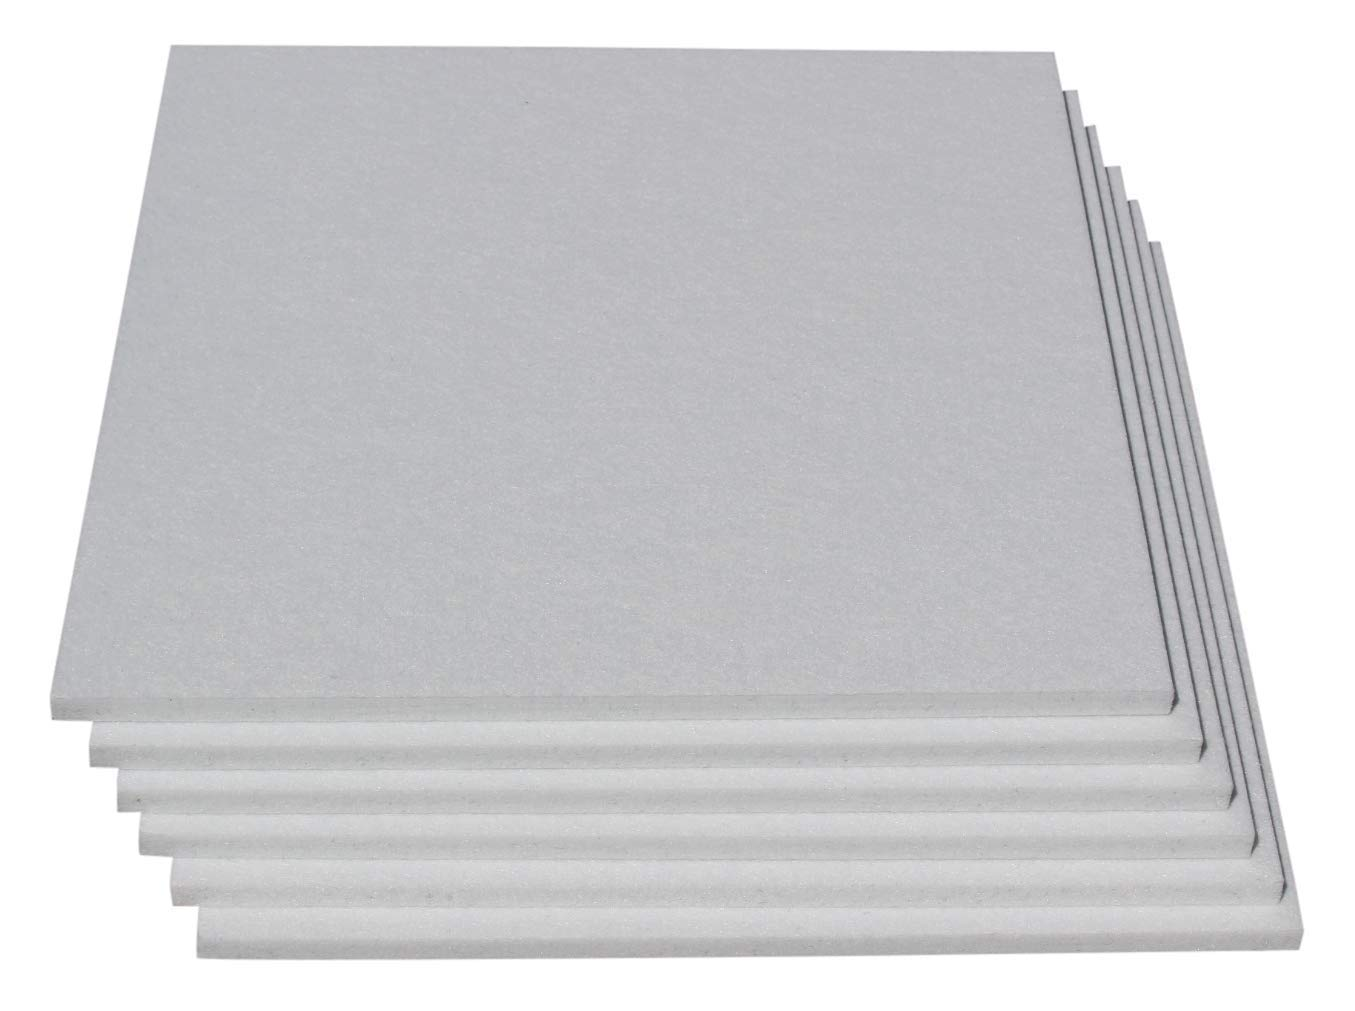 Dense Polyester Soundproofing Acoustic Panels Designed For Sound Absorption - 6 Tiles Per Pack - Great For Noise Treatment In Studios, Broadcast, Gaming, Office & More (White)